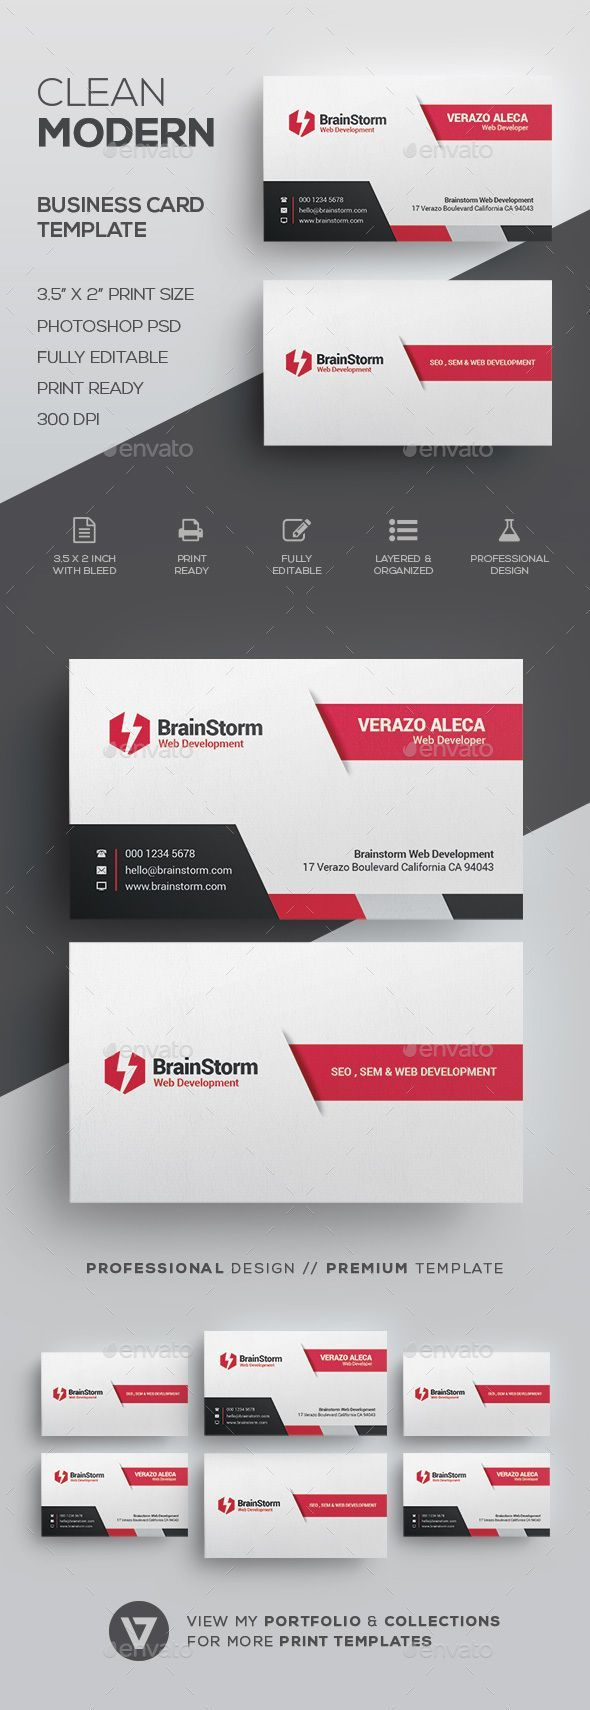 189 best carto de visita images on pinterest business card design clean business card template corporate business cards download here https reheart Images